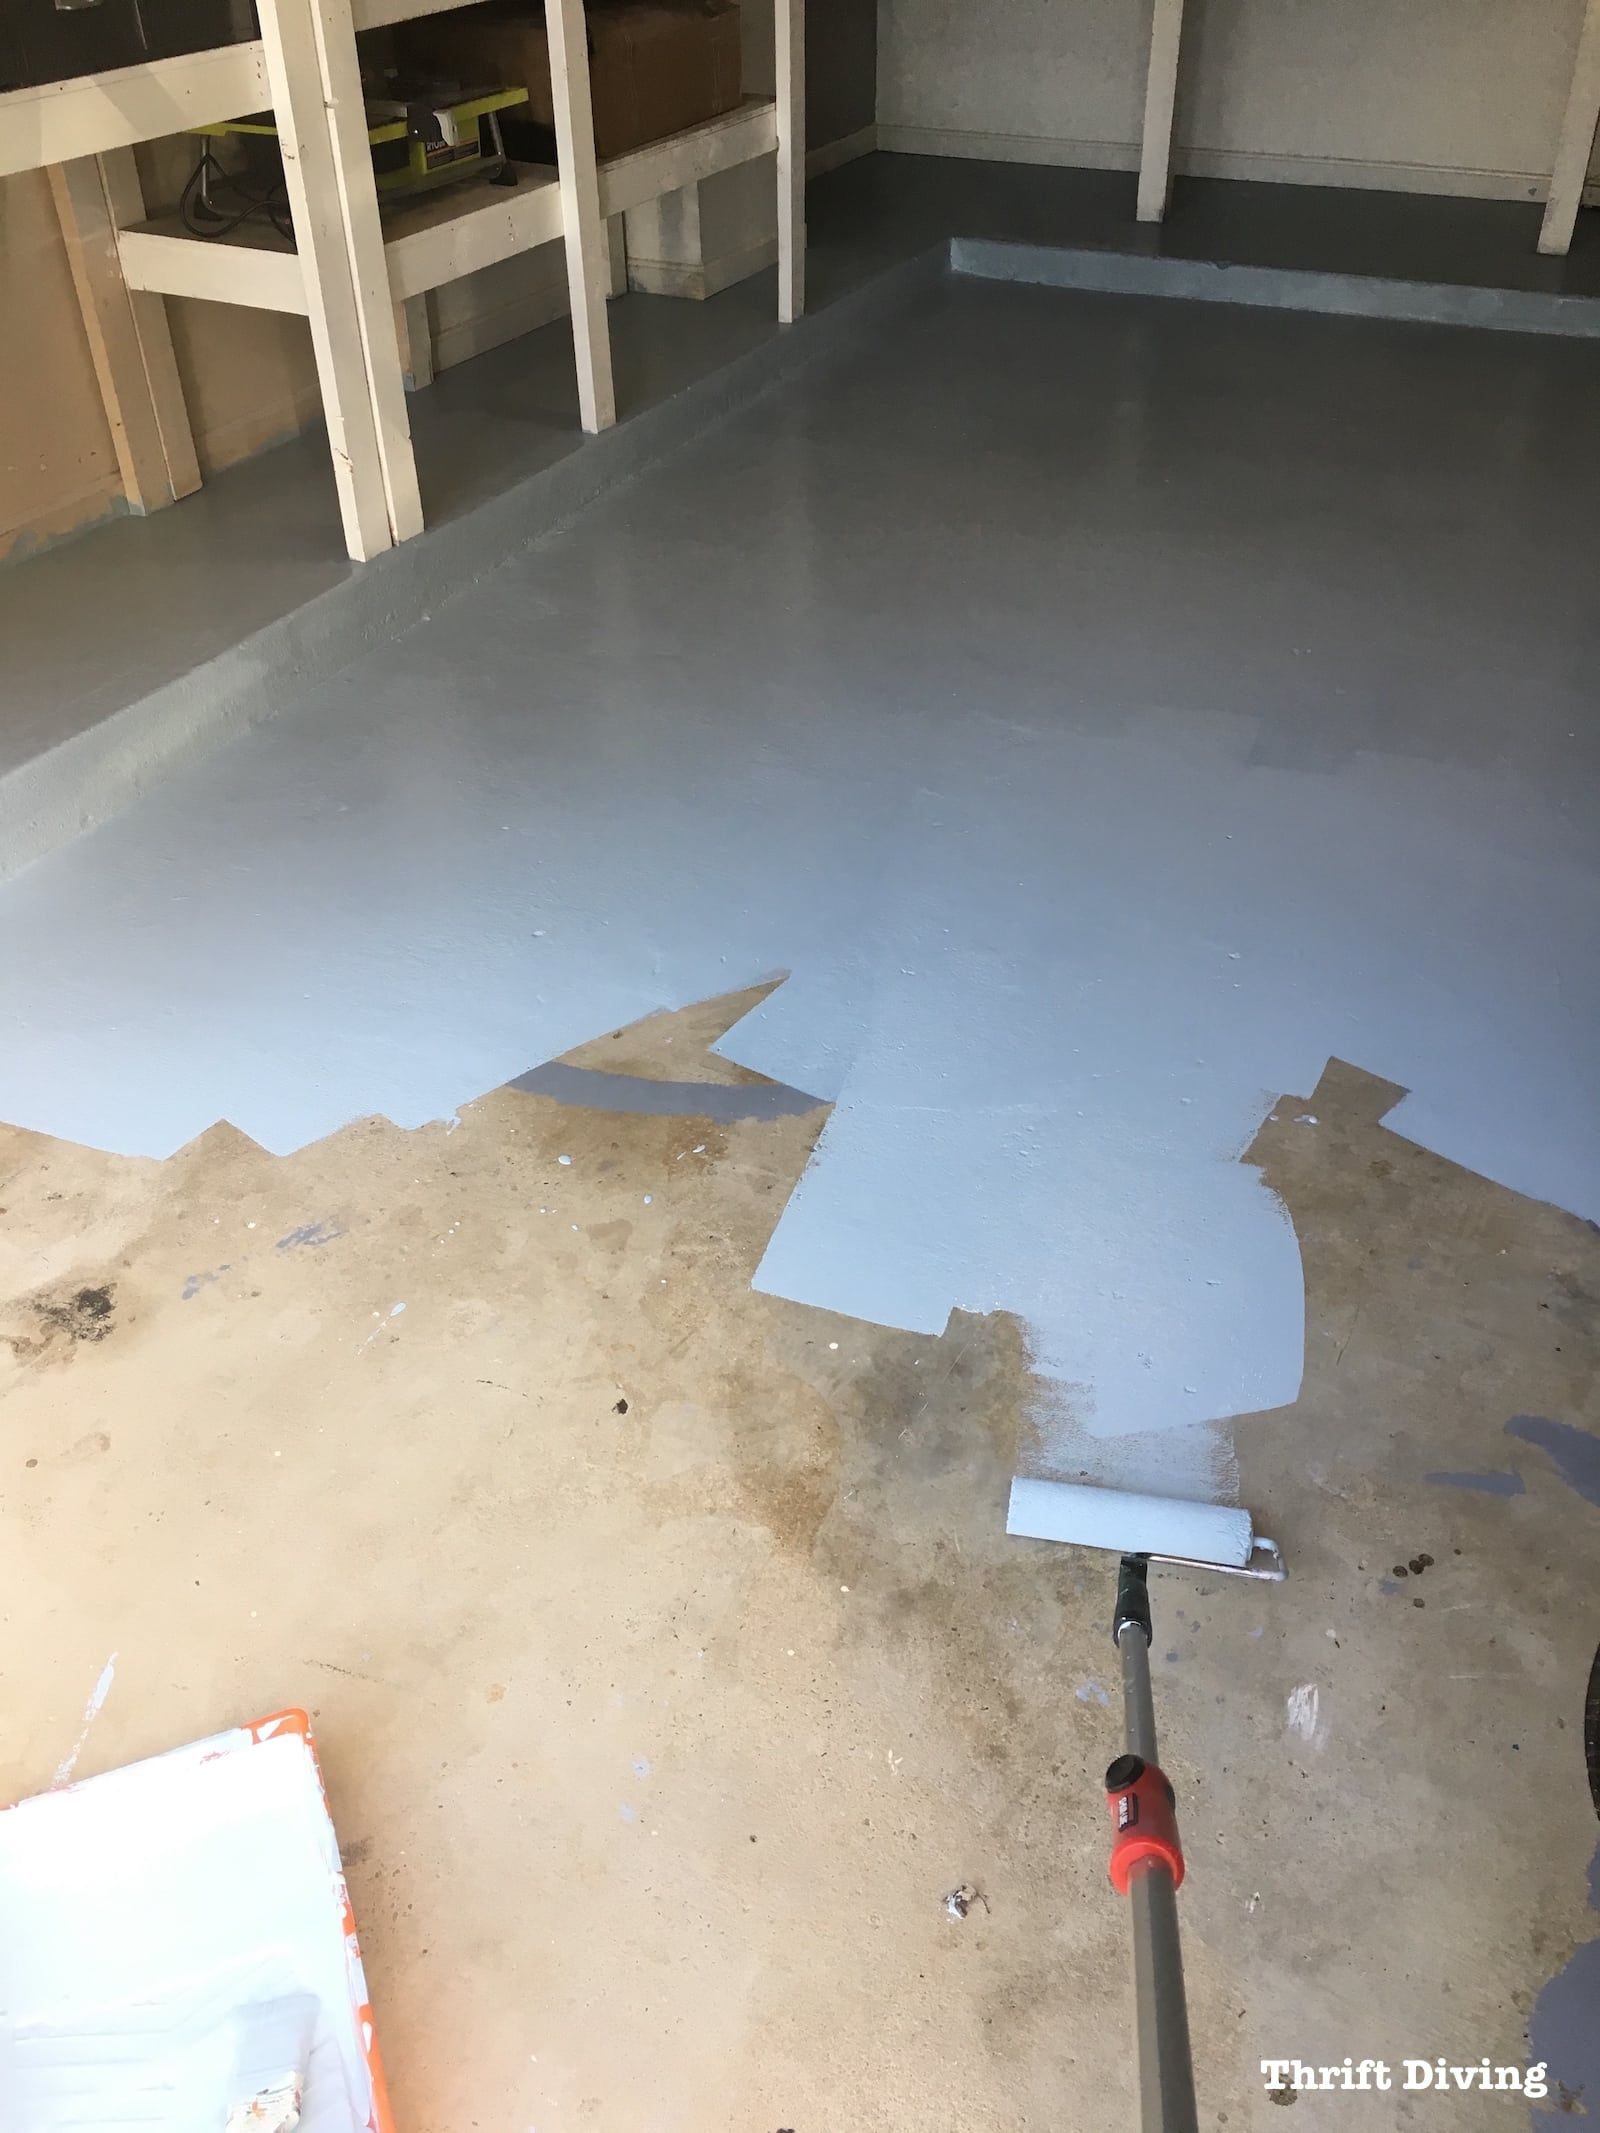 How To Paint Garage Floors With 1 Part Epoxy Paint Garage Floor Paint Garage Decor Painted Garage Walls